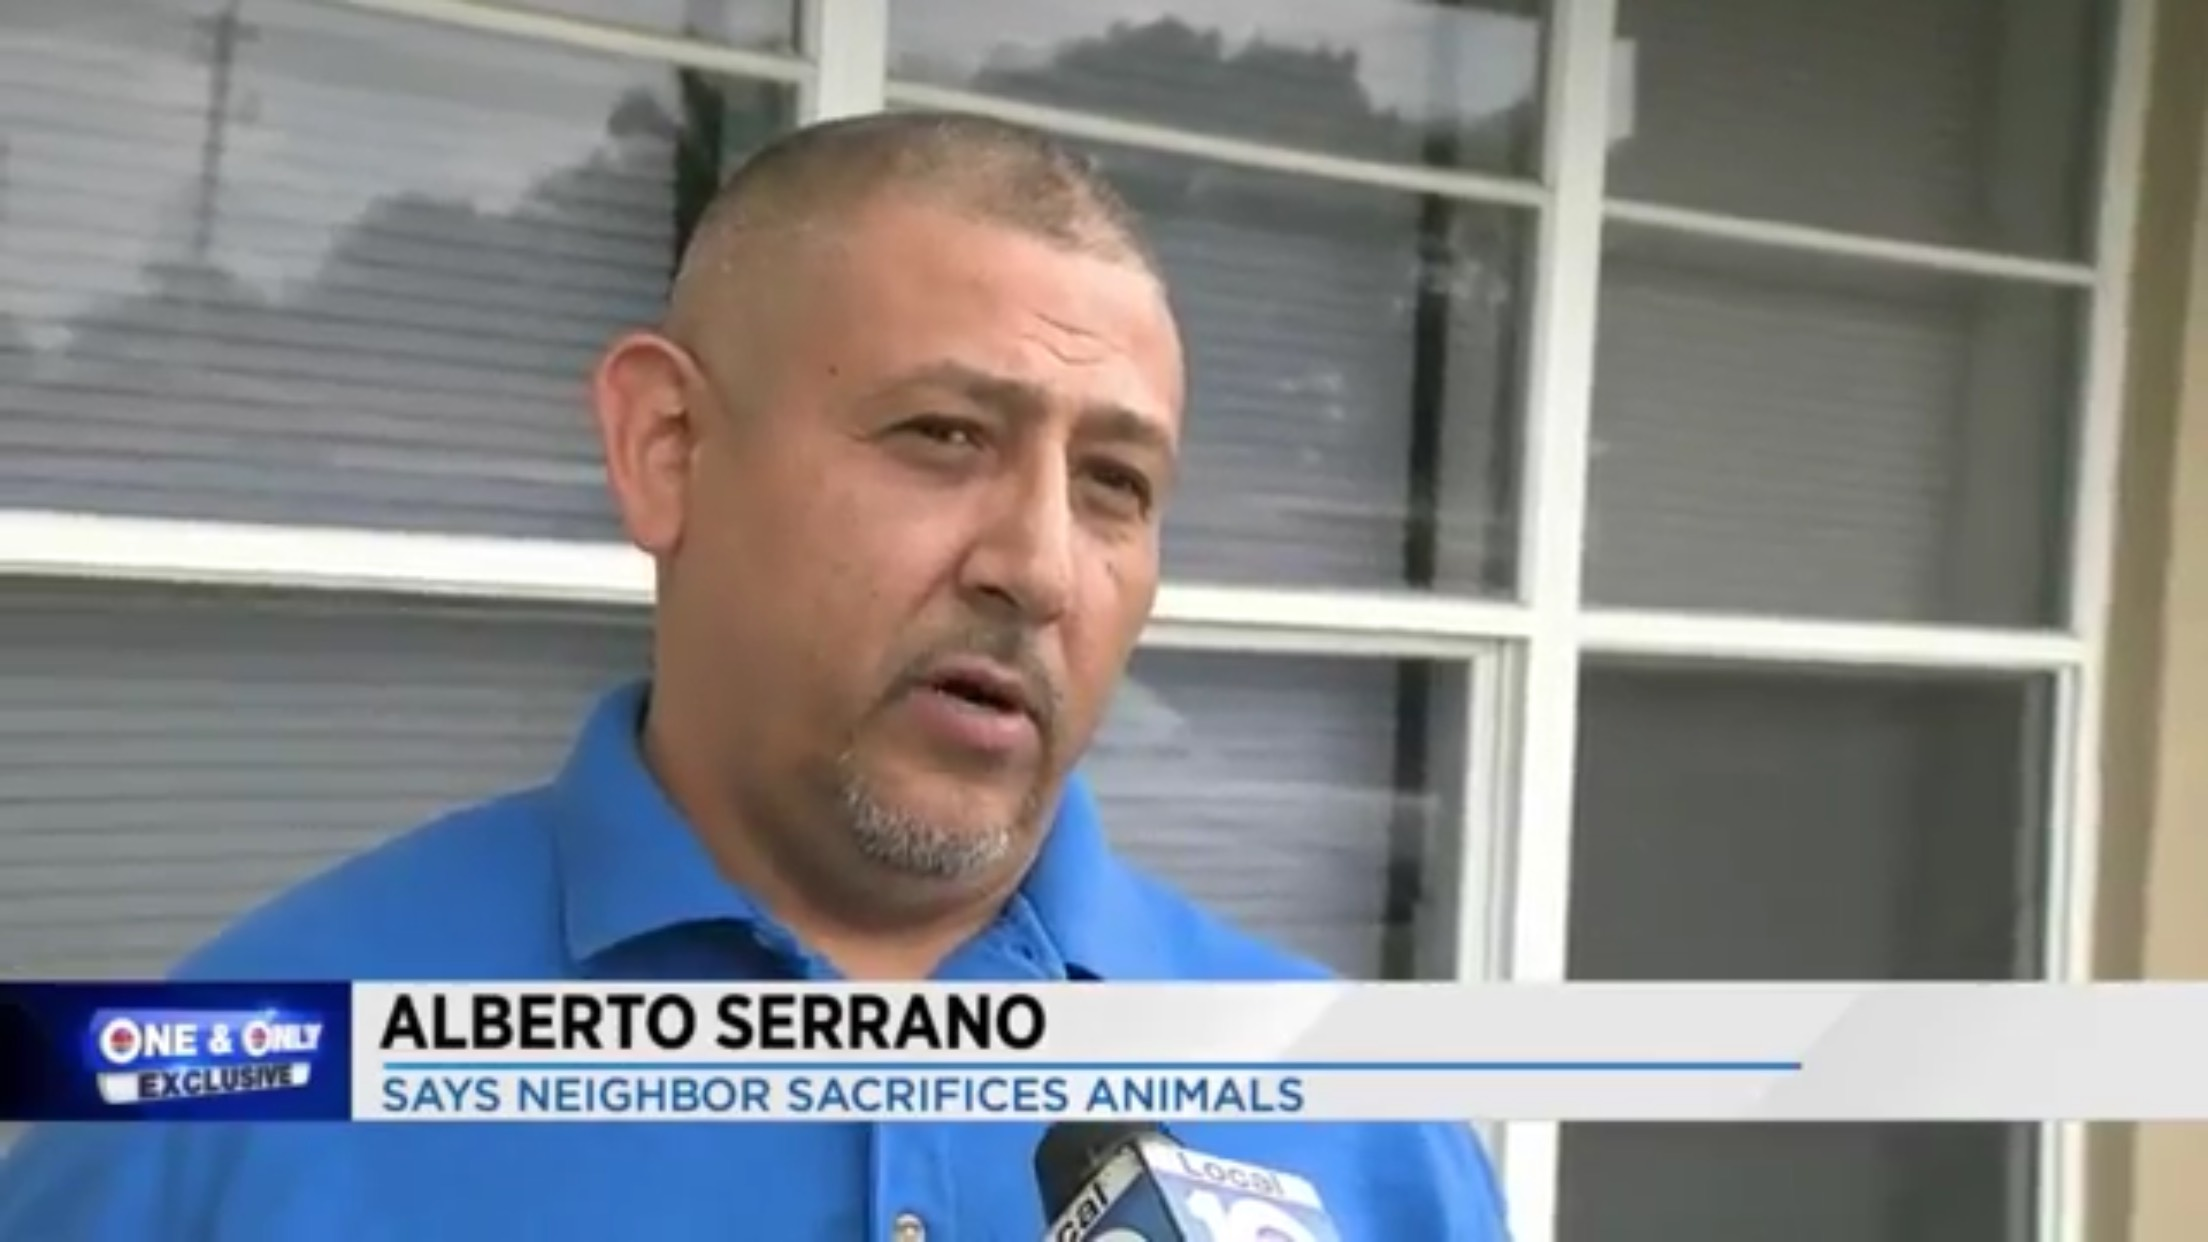 Alberto Serrano: Says Neighbor Sacrifices Animals